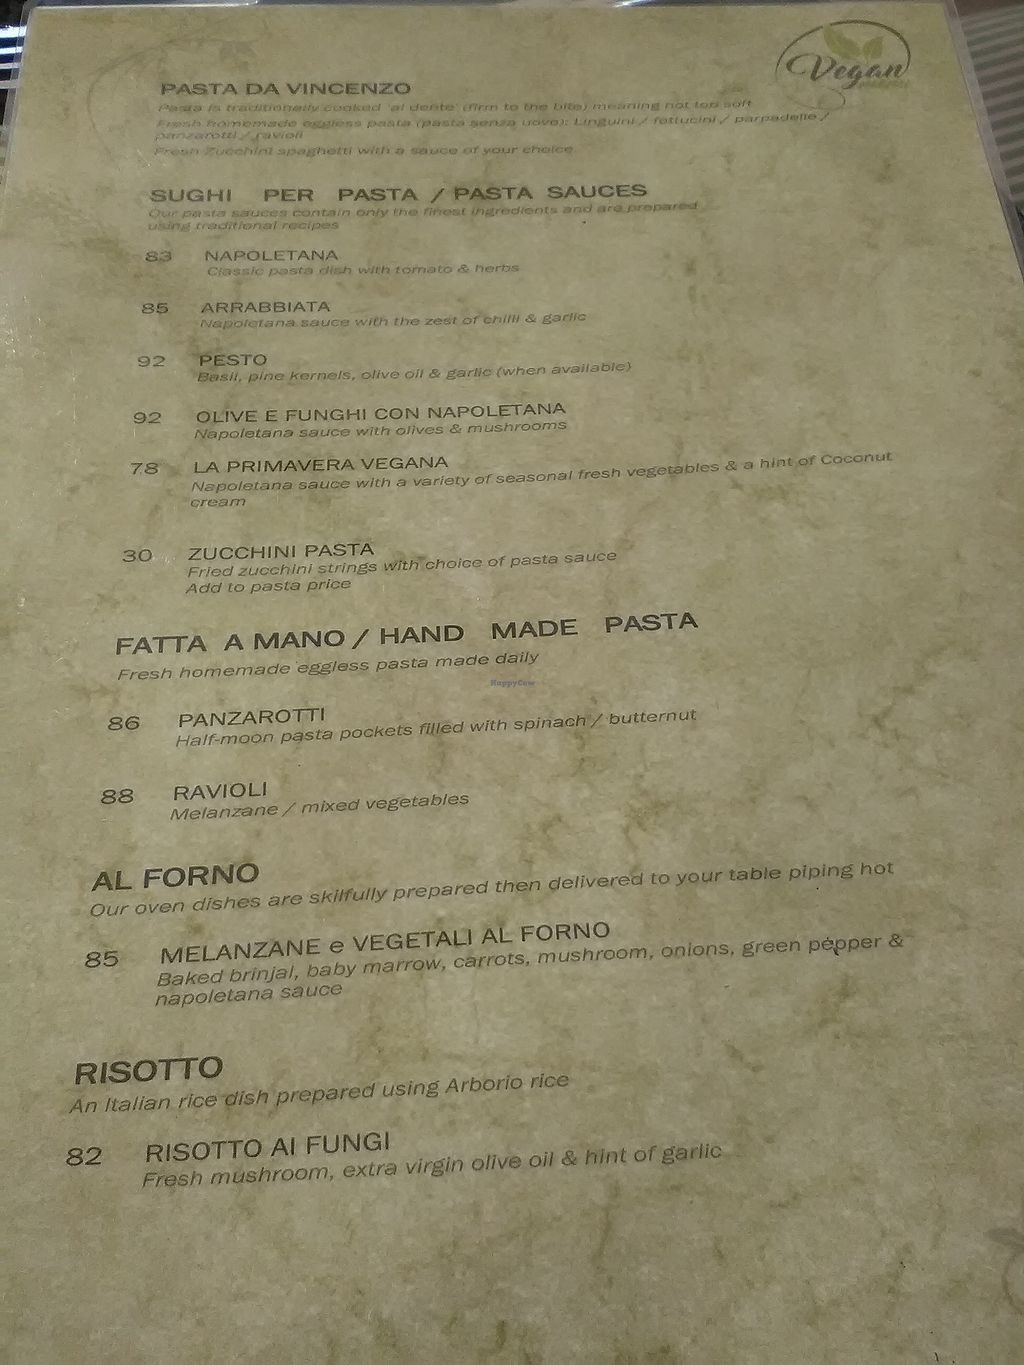 """Photo of Da Vicenzo  by <a href=""""/members/profile/Wolfmoon"""">Wolfmoon</a> <br/>Vegan menu upon request (back) <br/> February 25, 2018  - <a href='/contact/abuse/image/91655/363559'>Report</a>"""